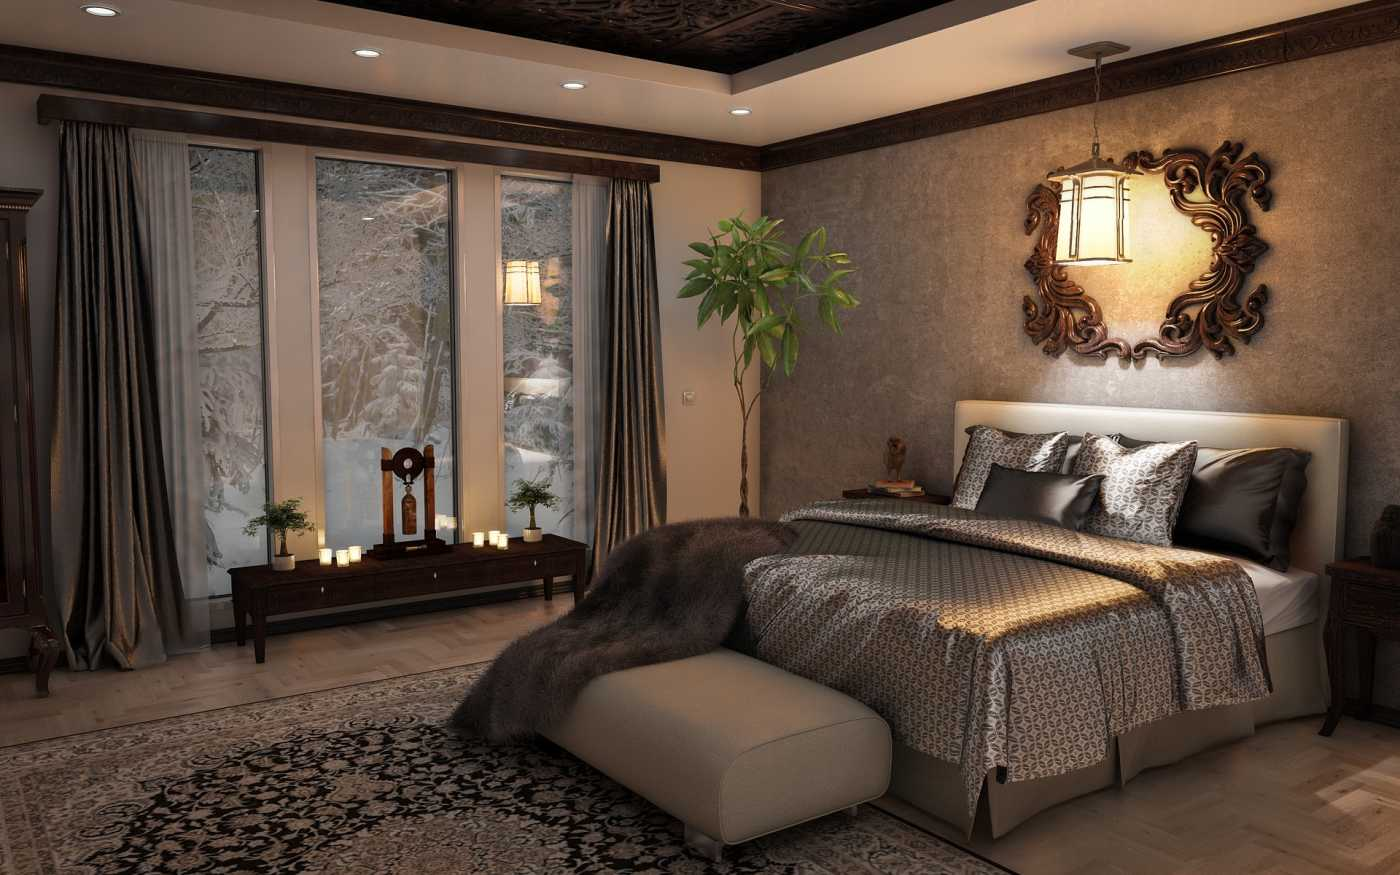 Bed room Interior desing